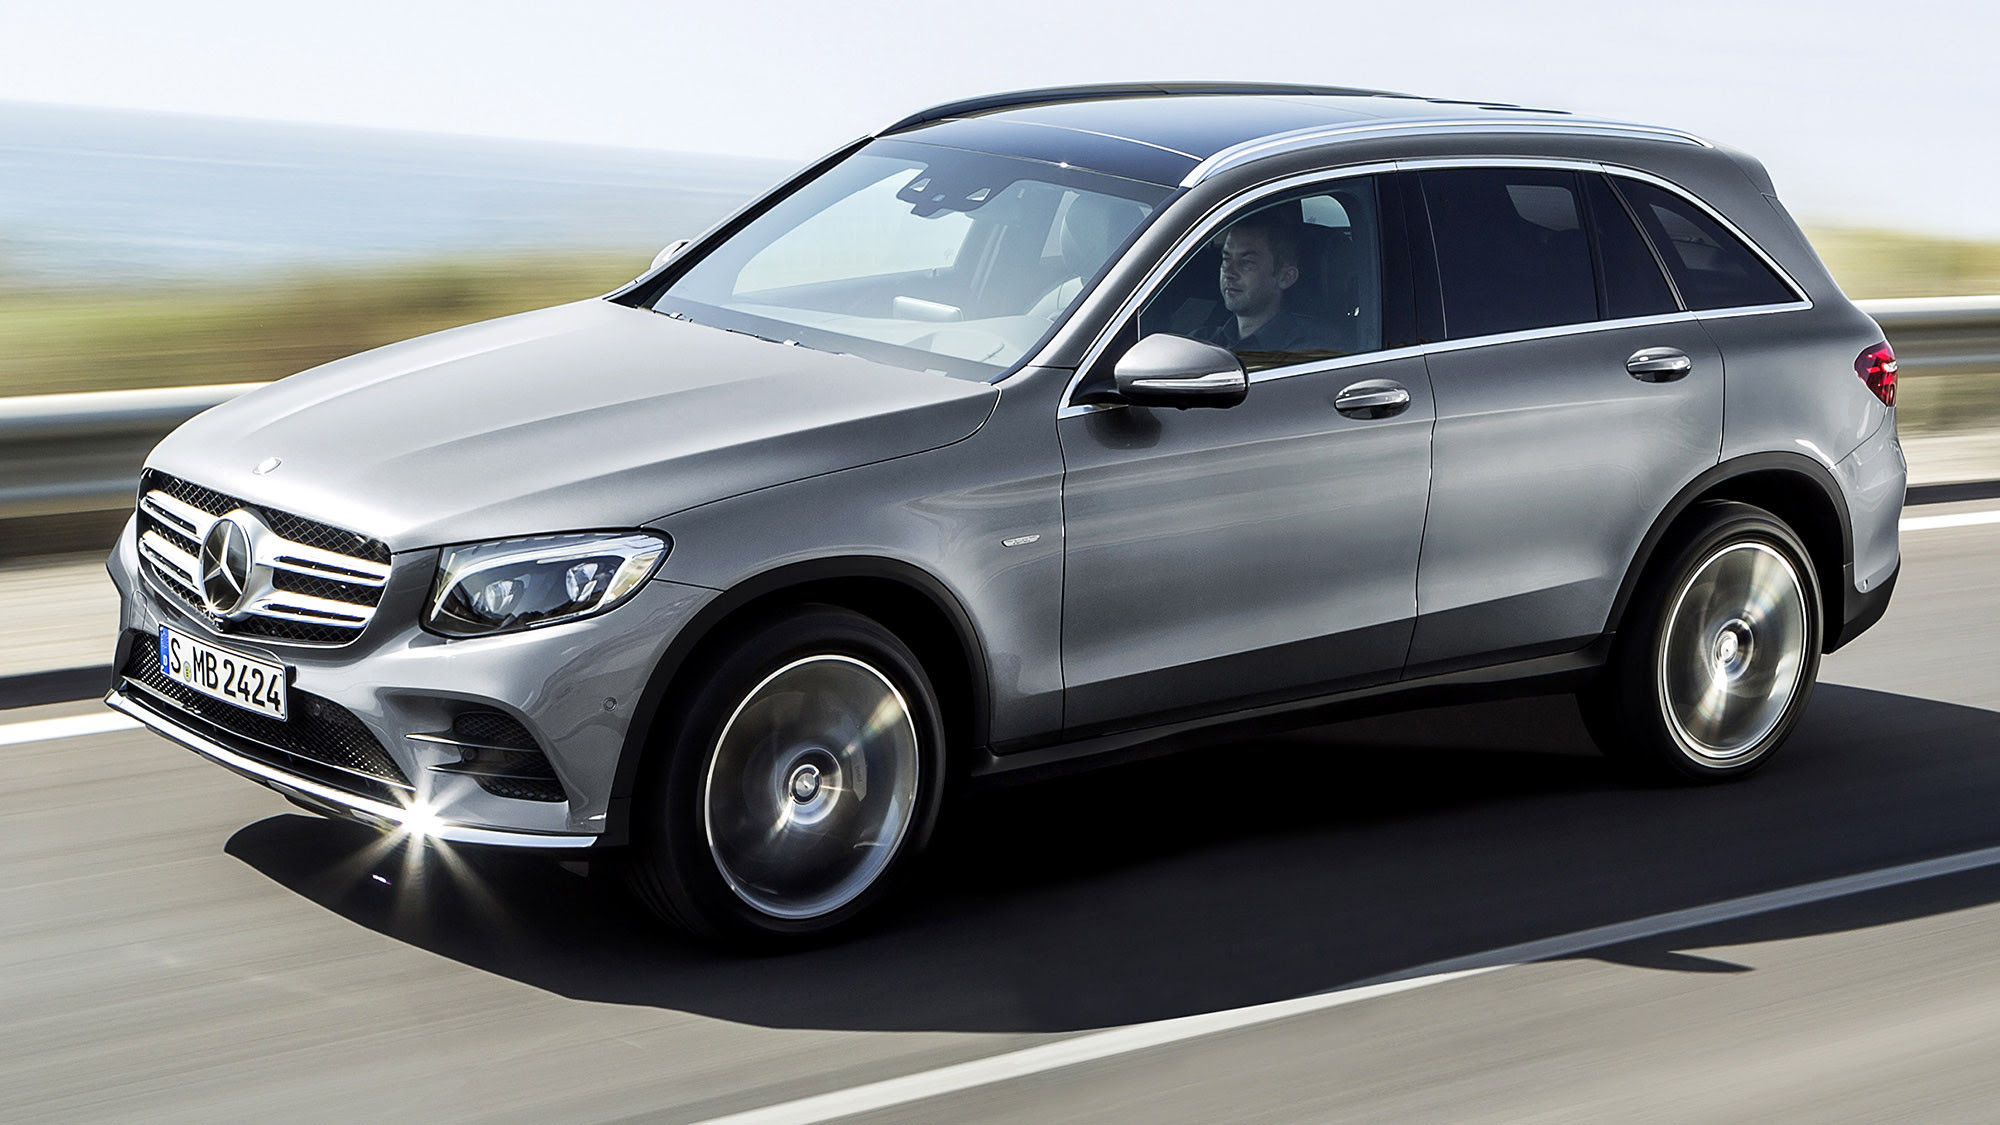 Mercedes debuts new GLC luxury SUV - LA Times